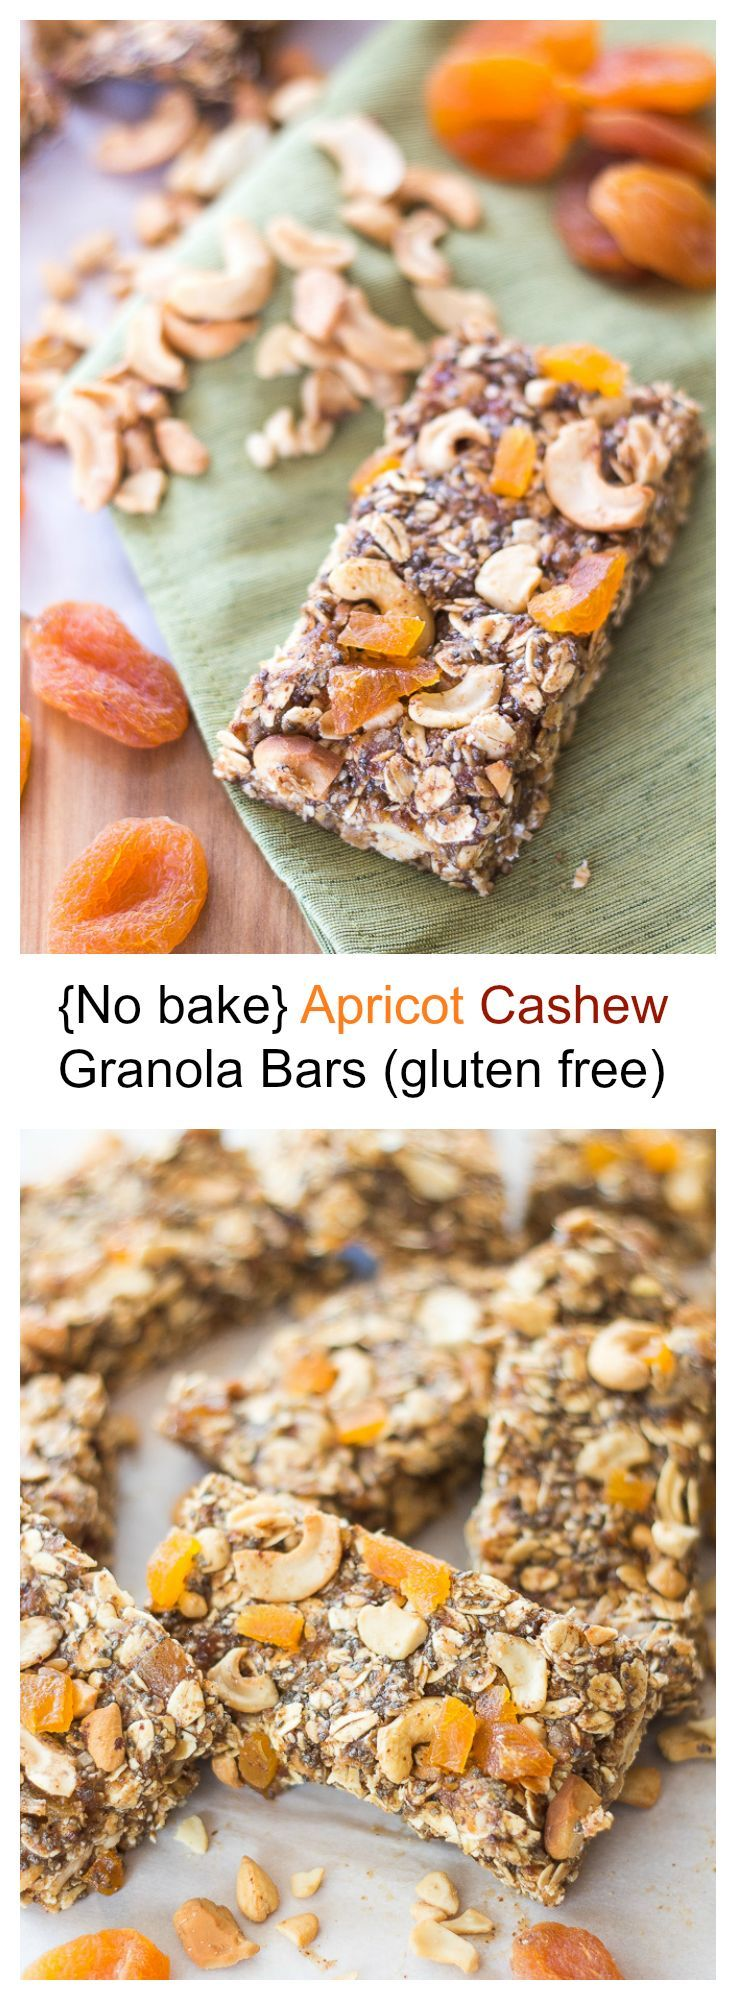 An all natural, gluten free apricot cashew granola bar filled with chia seeds, flax seeds, and oats for a fiber filled breakfast that will leave you feeling full till lunch time.